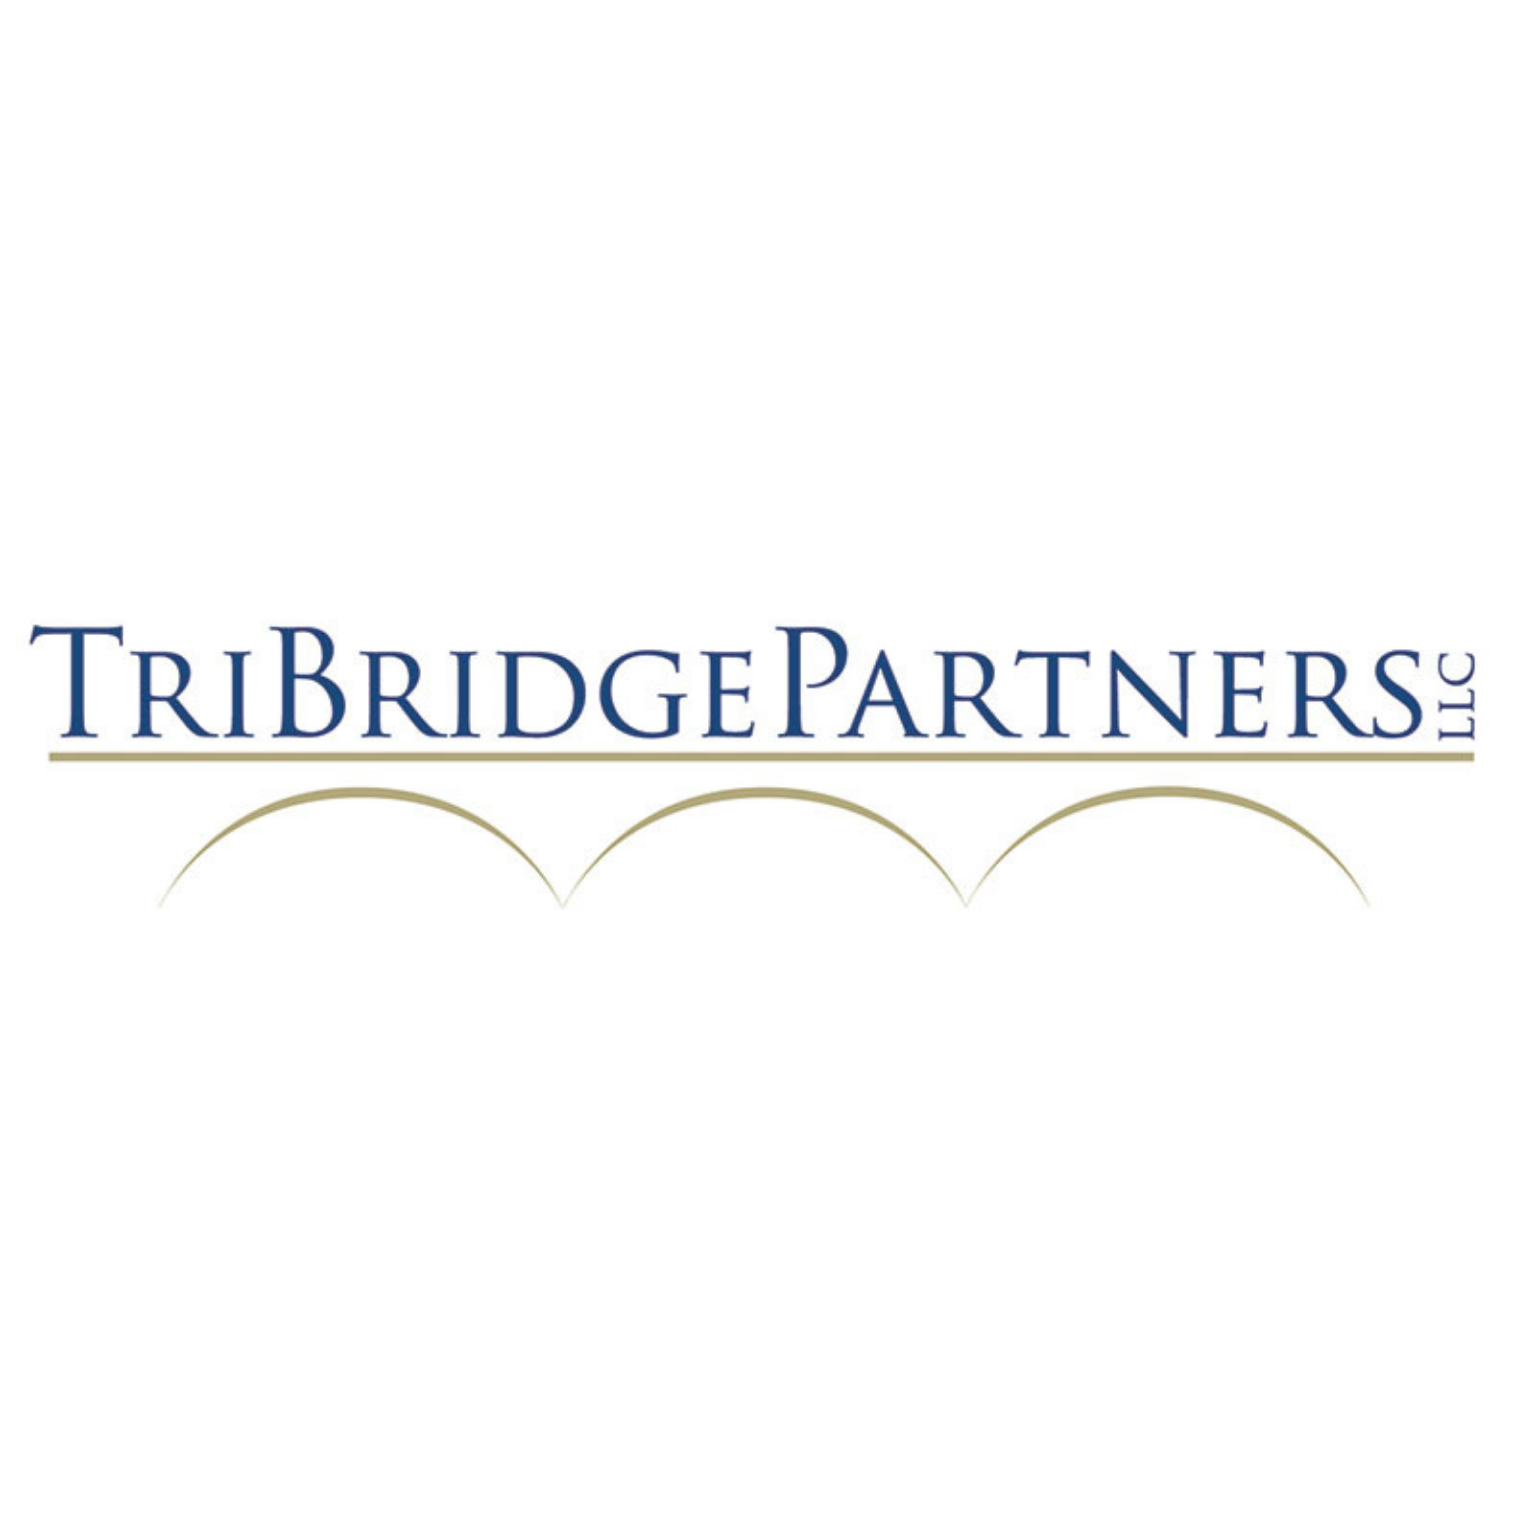 TriBridge Partners